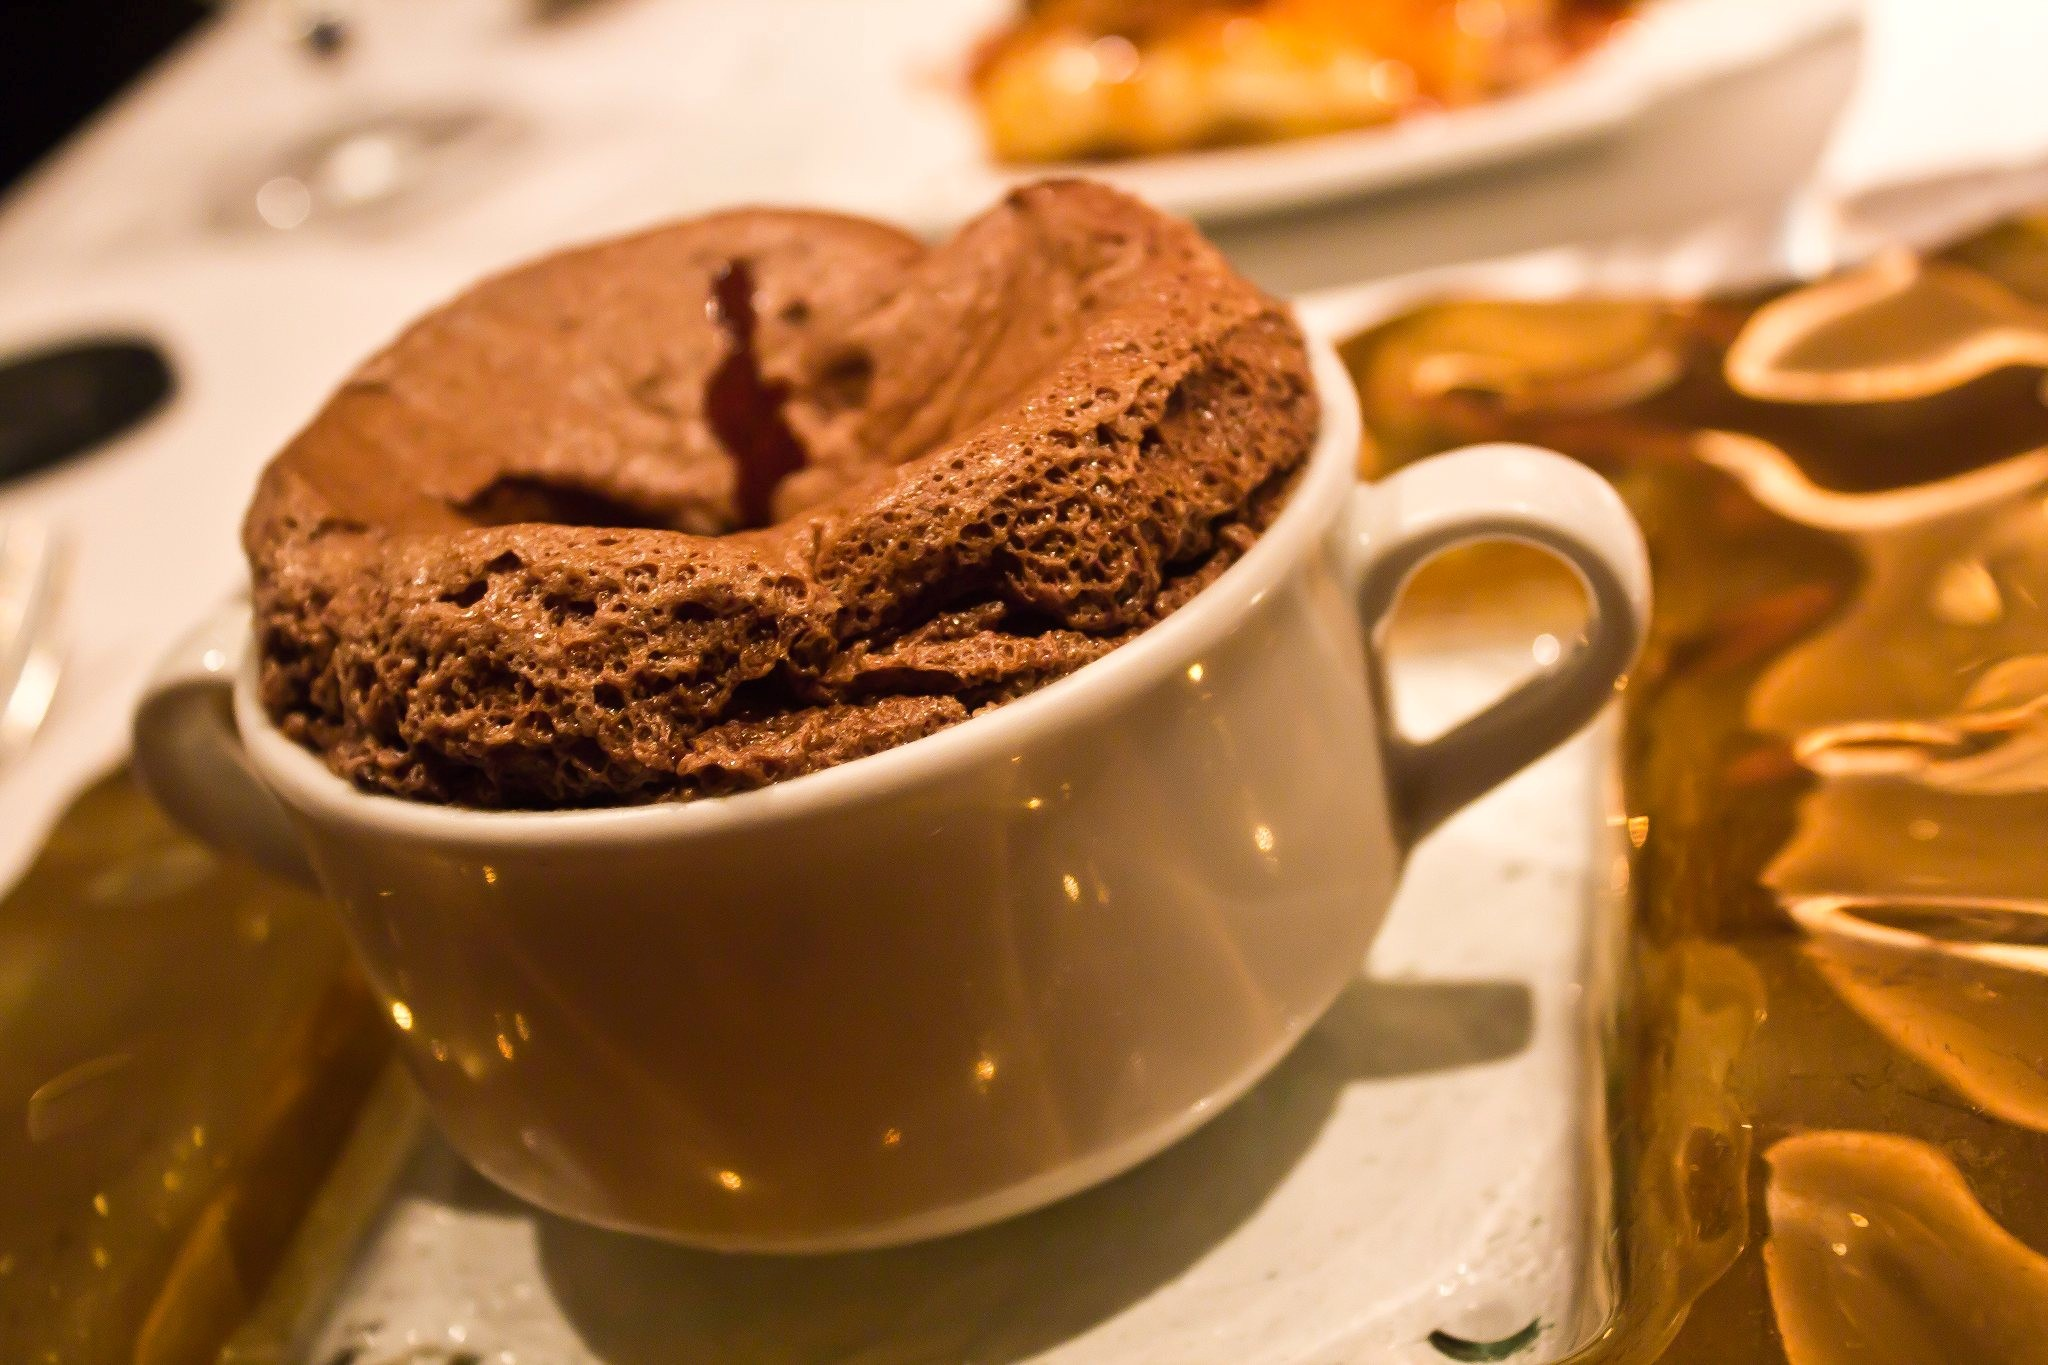 Course 4: Baked Chocolate Soufflé